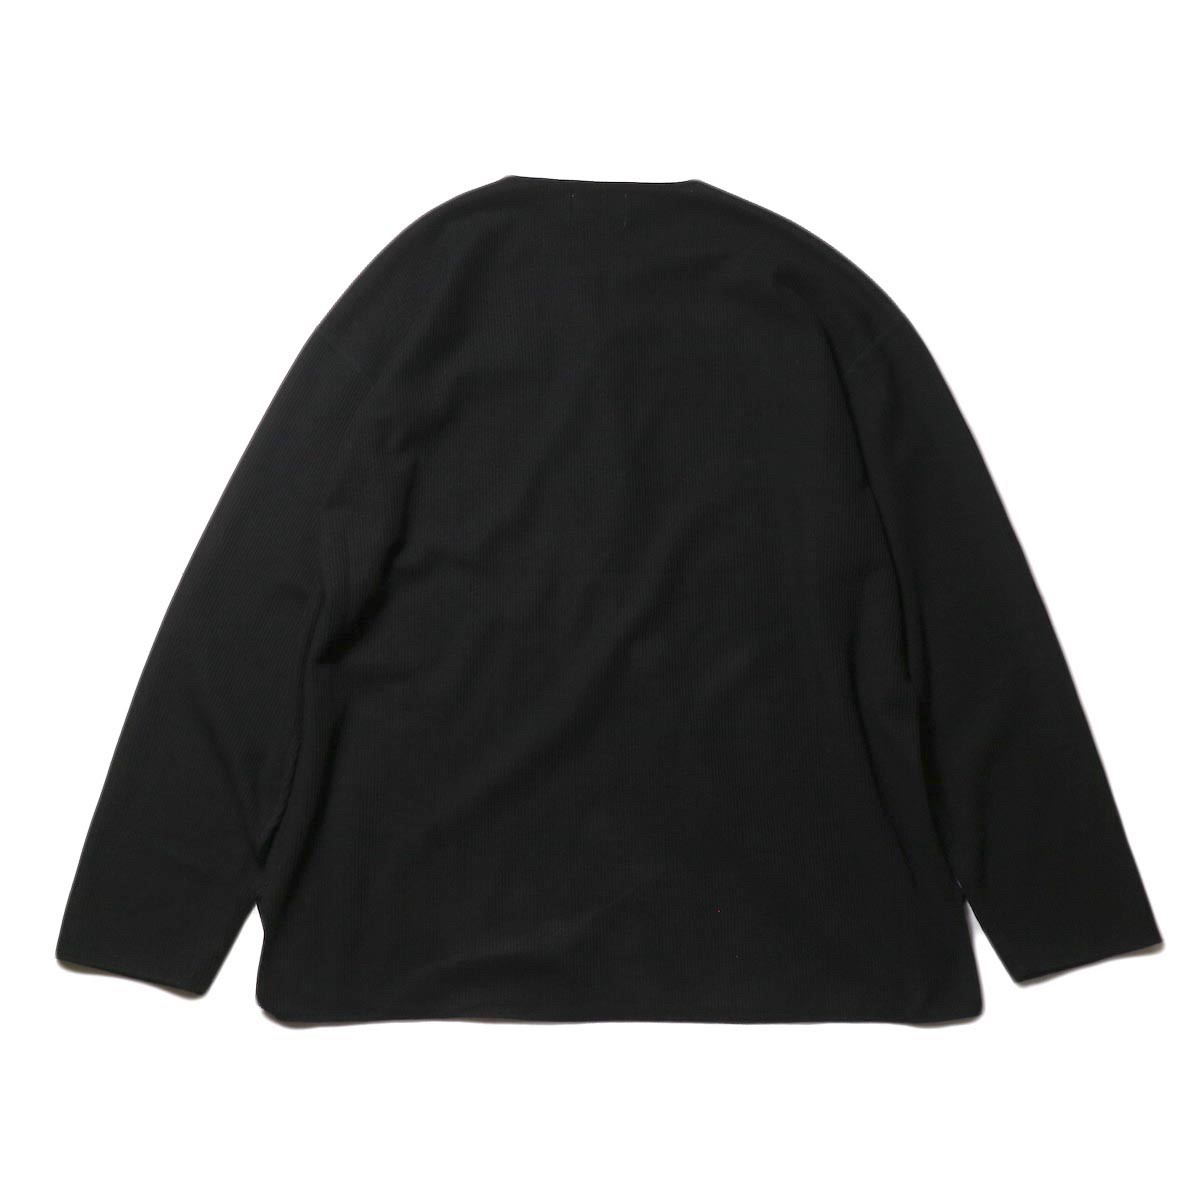 blurhms / New Rough & Smooth Thermal Over-Neck Loose Fit (Black) 背面